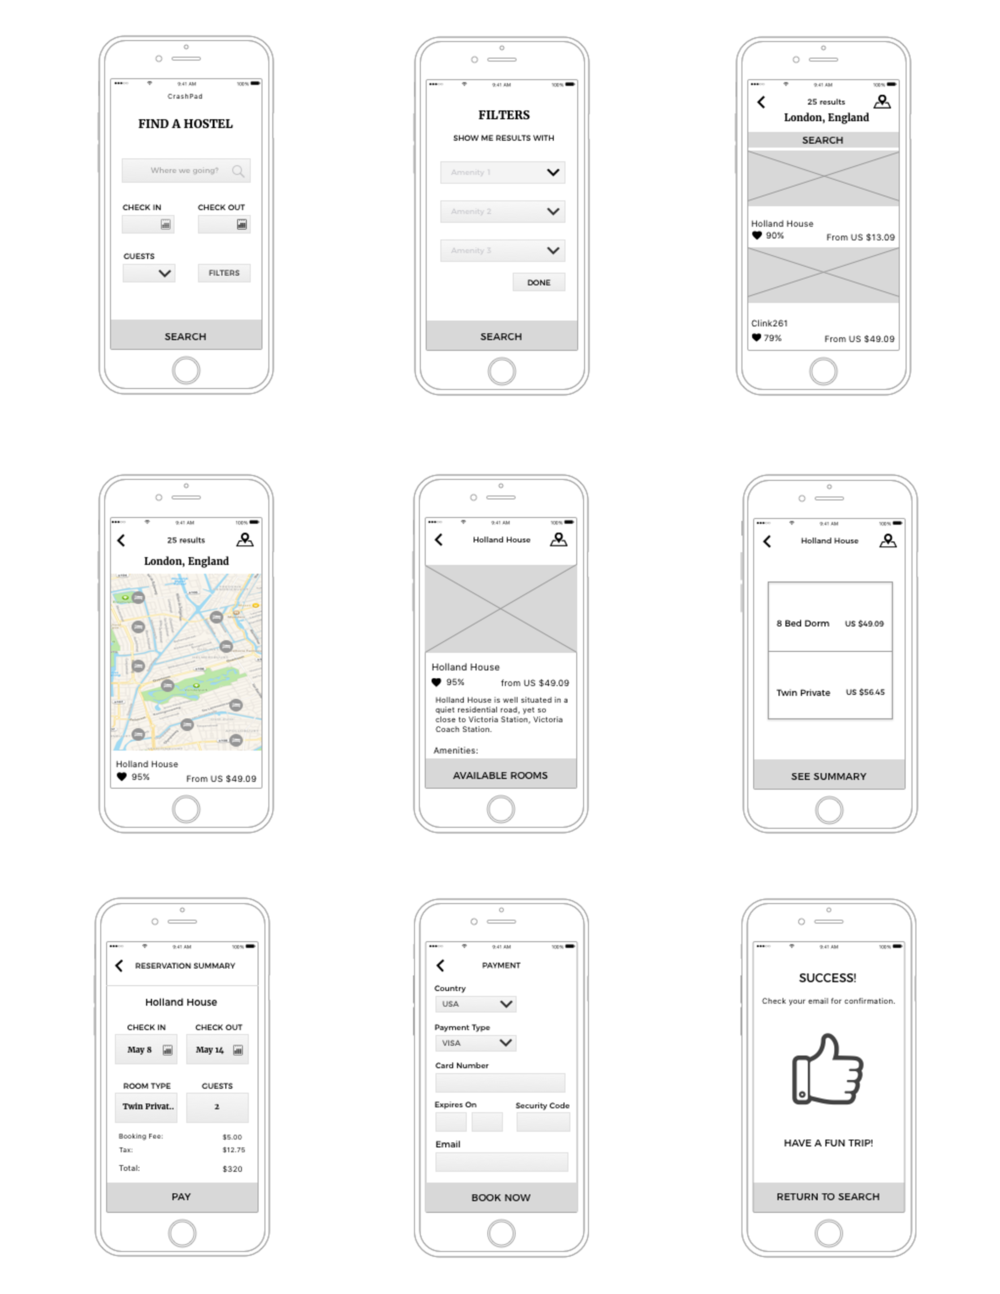 wireframes-1.png